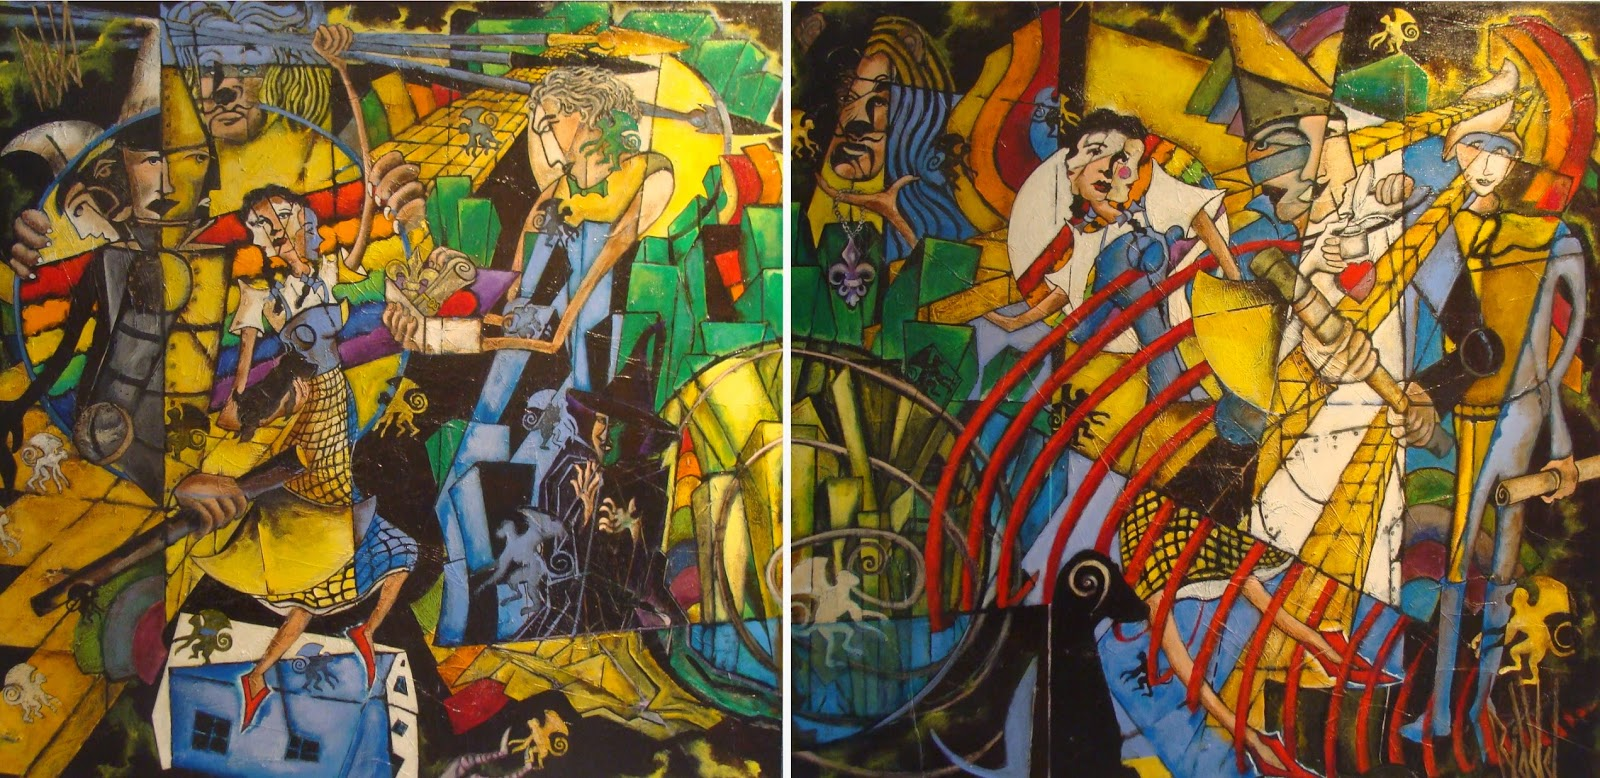 barbara steven paul riddle marion royael gallery these two 4 x 4 acrylic oil paintings on canvas by steven paul riddle are based on an essay by henry littlefield on the wonderful wizard of oz the